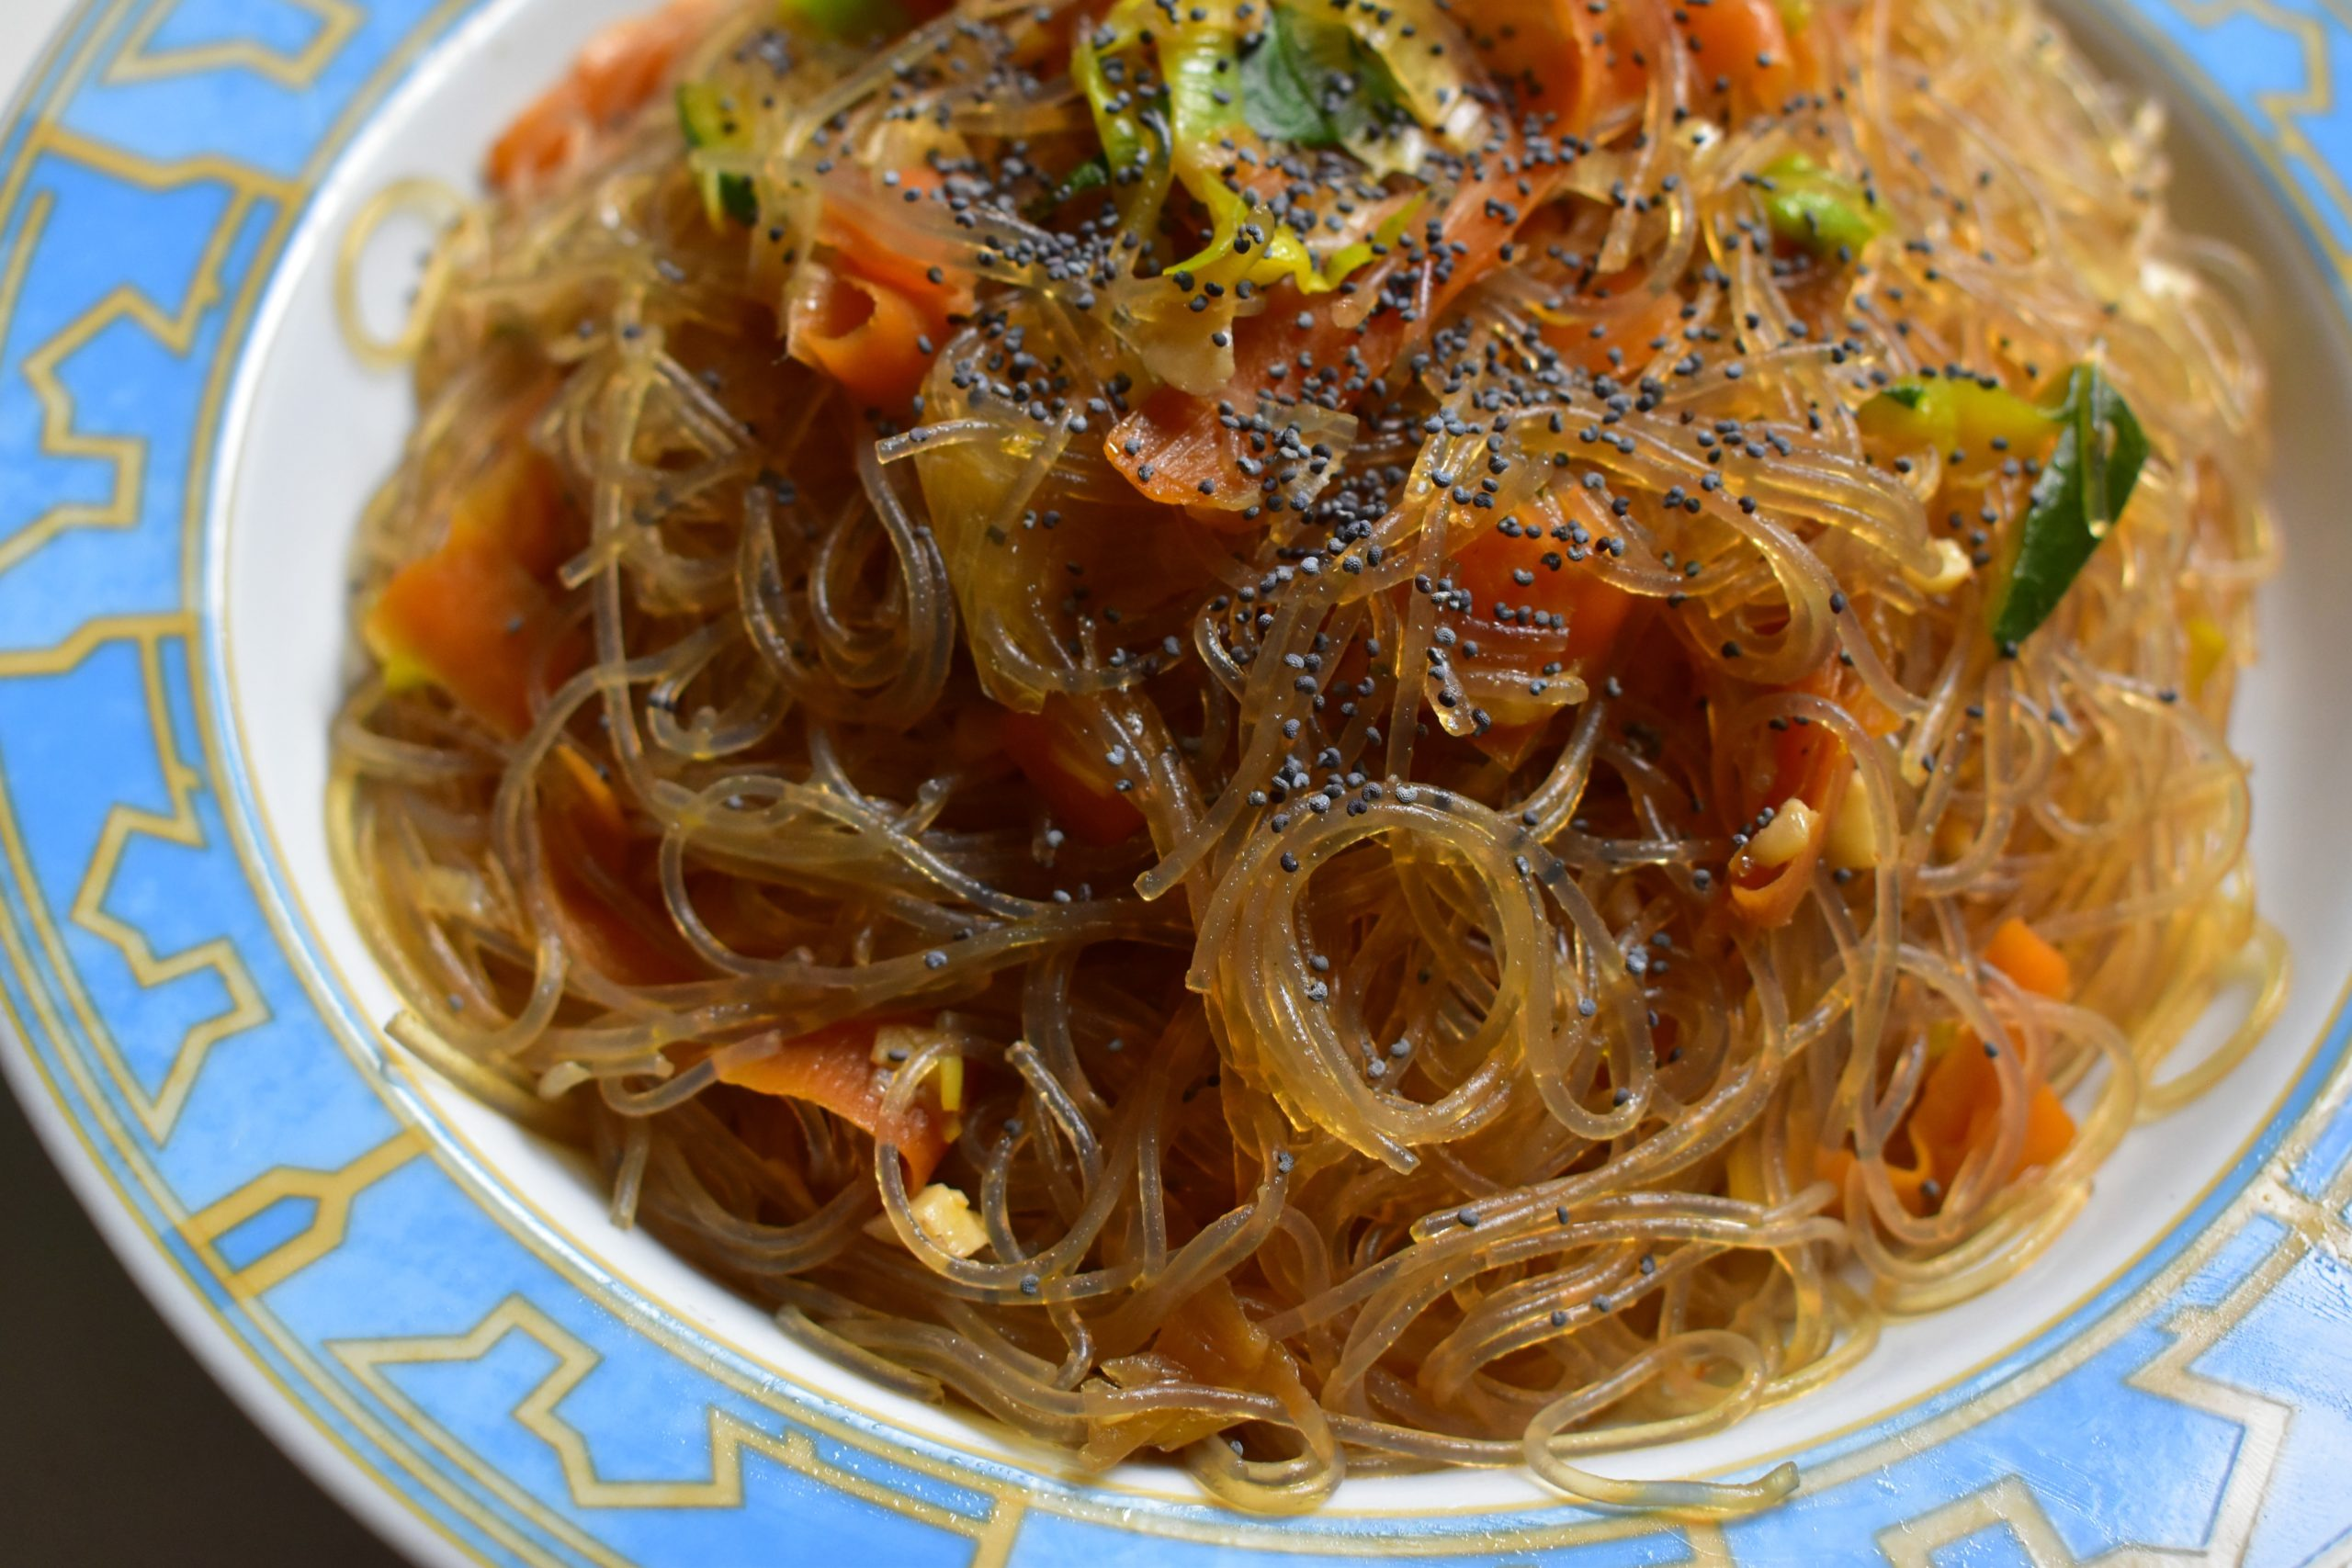 Soy spaghetti with zucchini, carrots, leeks and cashews